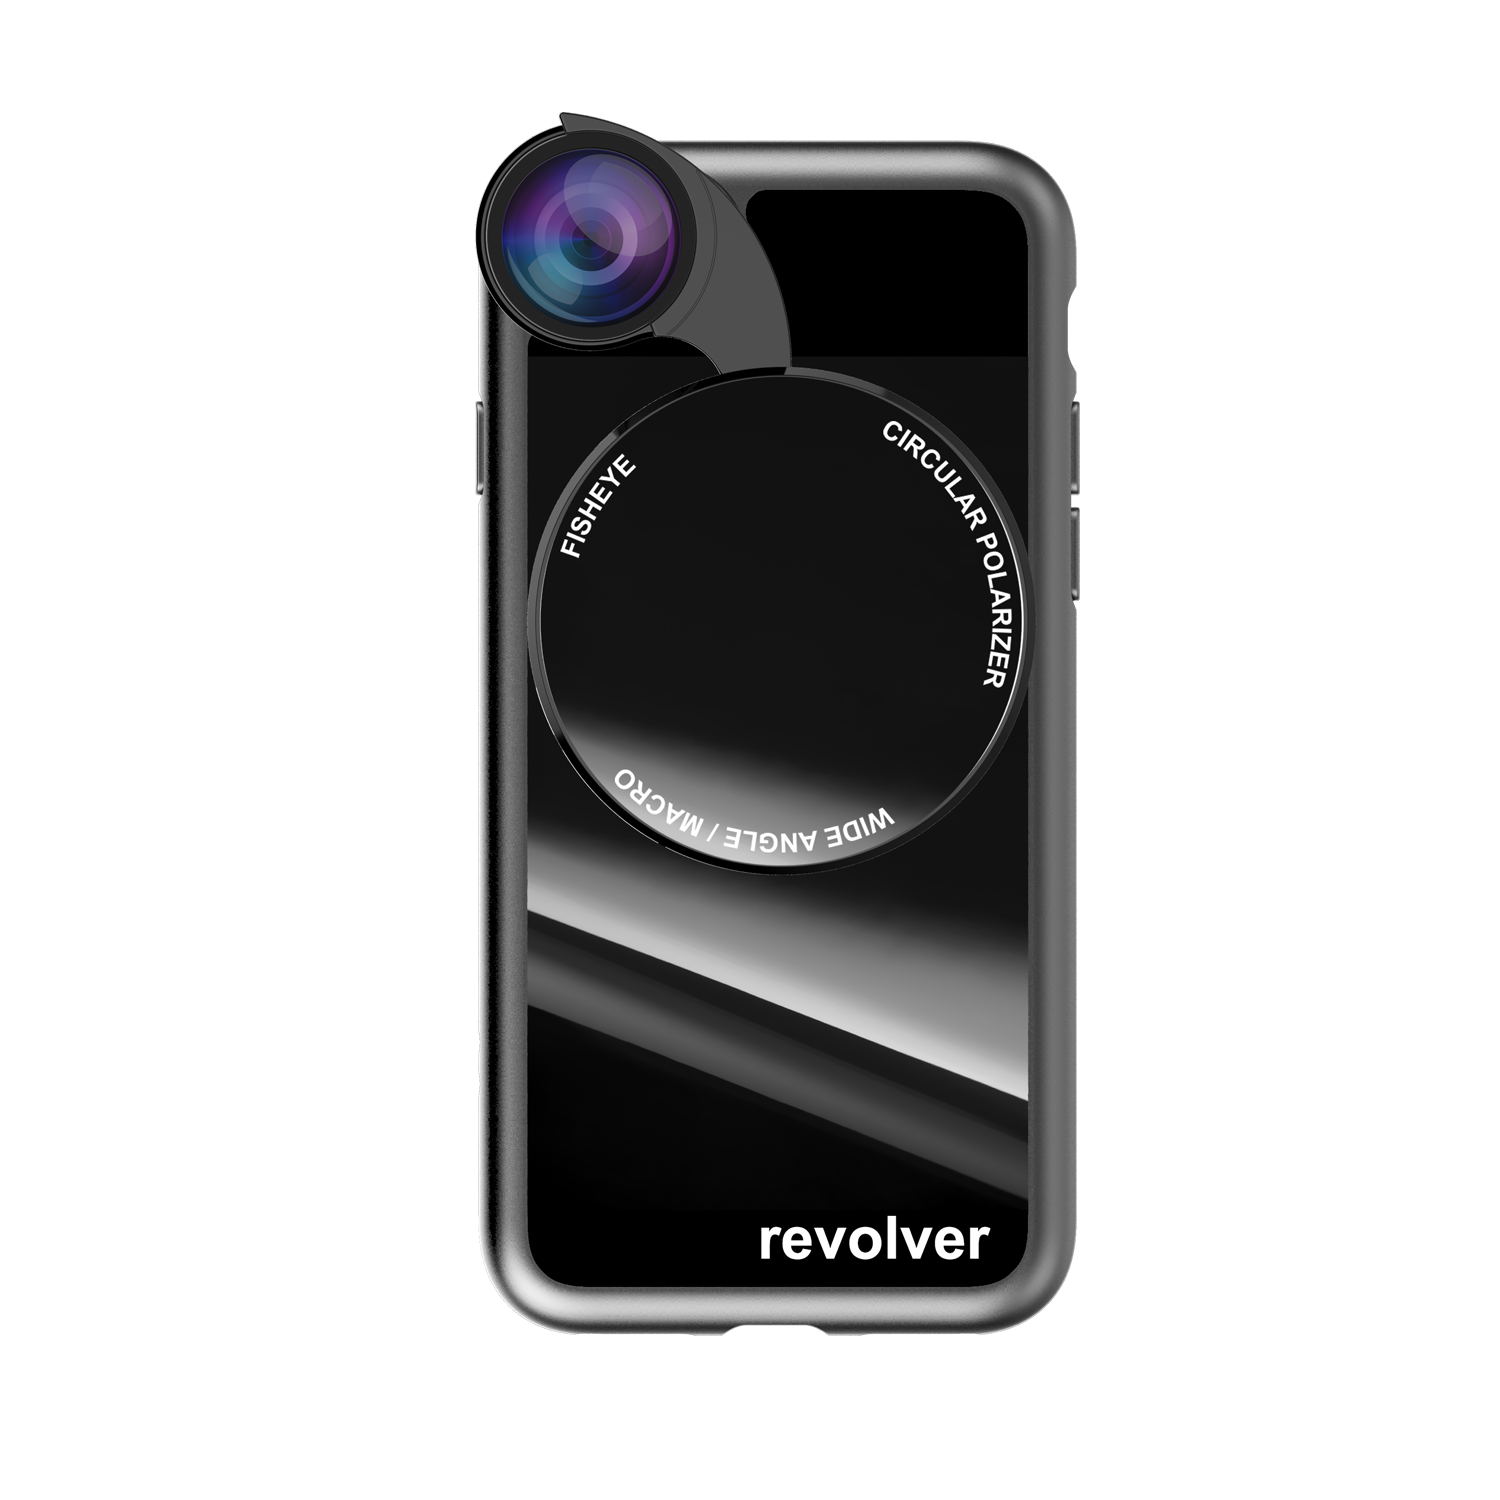 ZTYLUS ( IPHONE X ) 4 in 1 - REVOLVER M SERIES LENS KIT